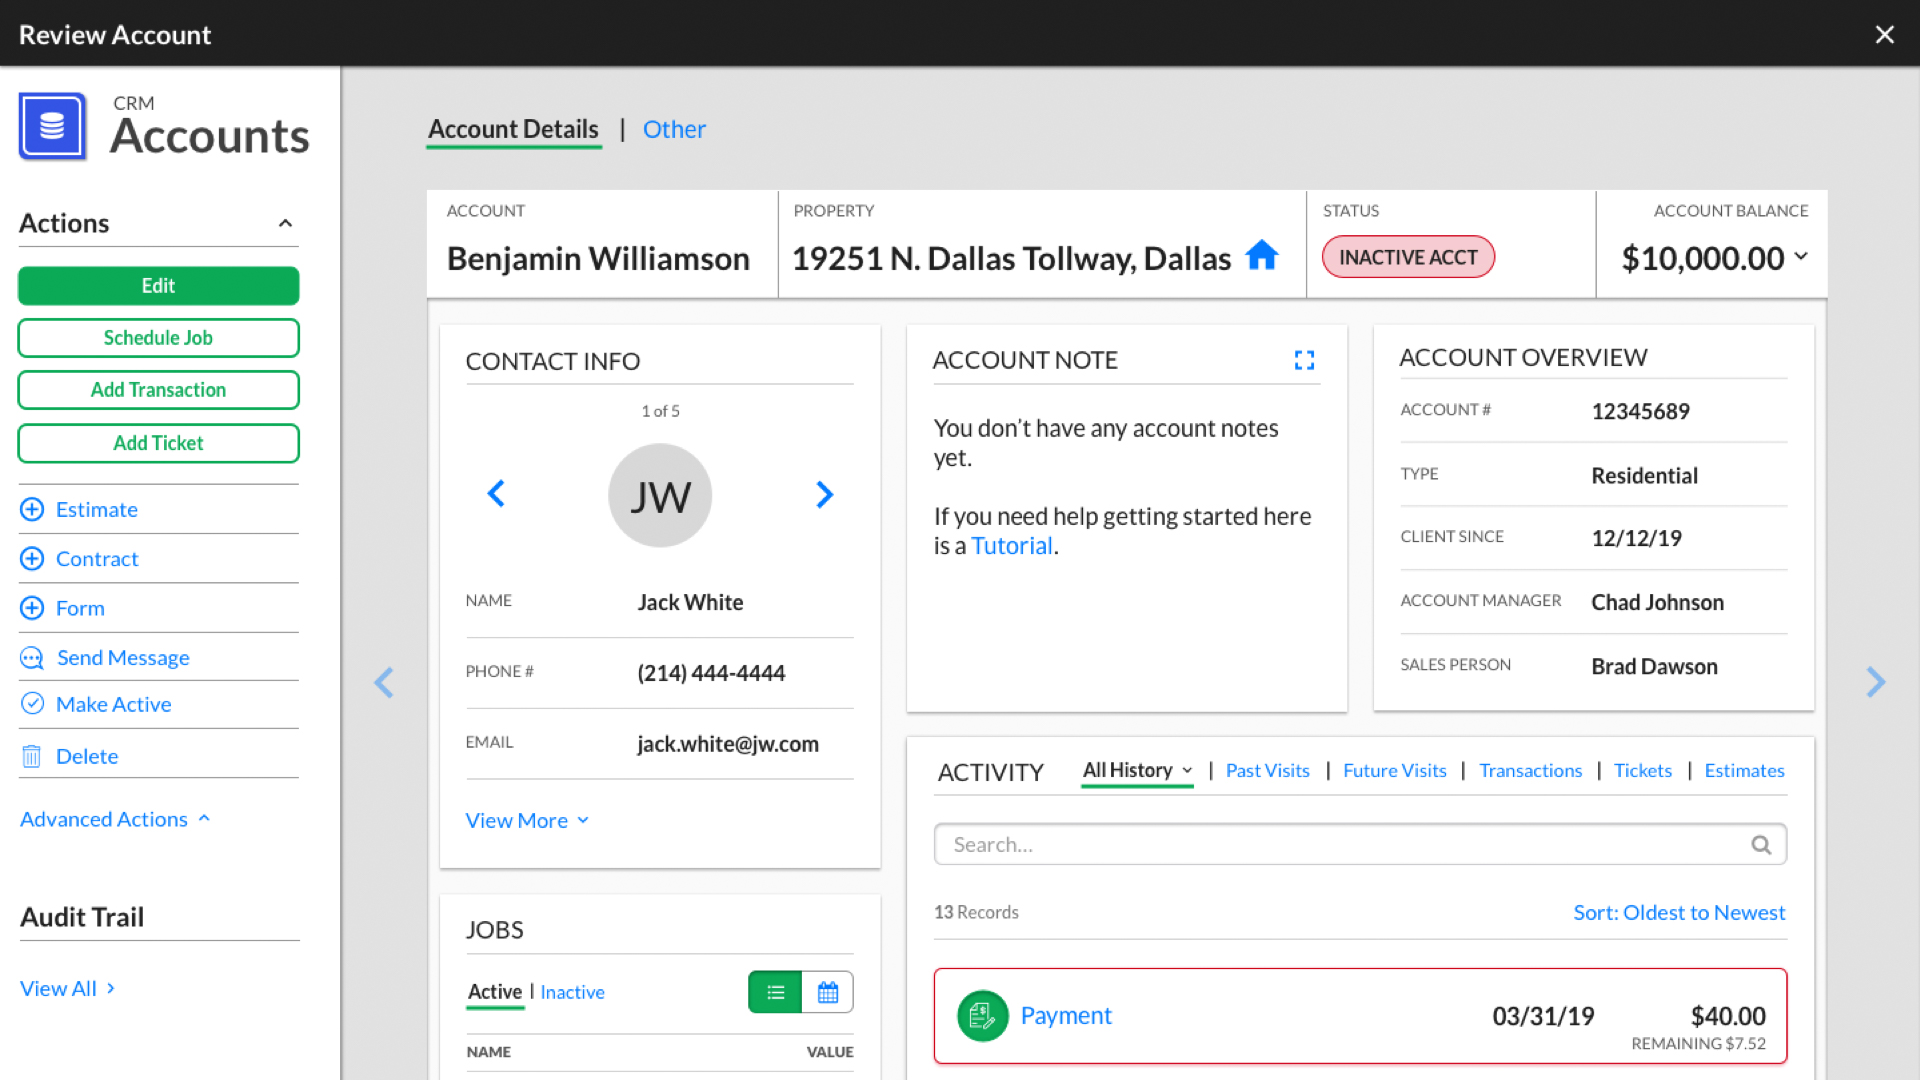 View all of your accounts in one place. This accounts screen makes it simple to see the full status of any client.